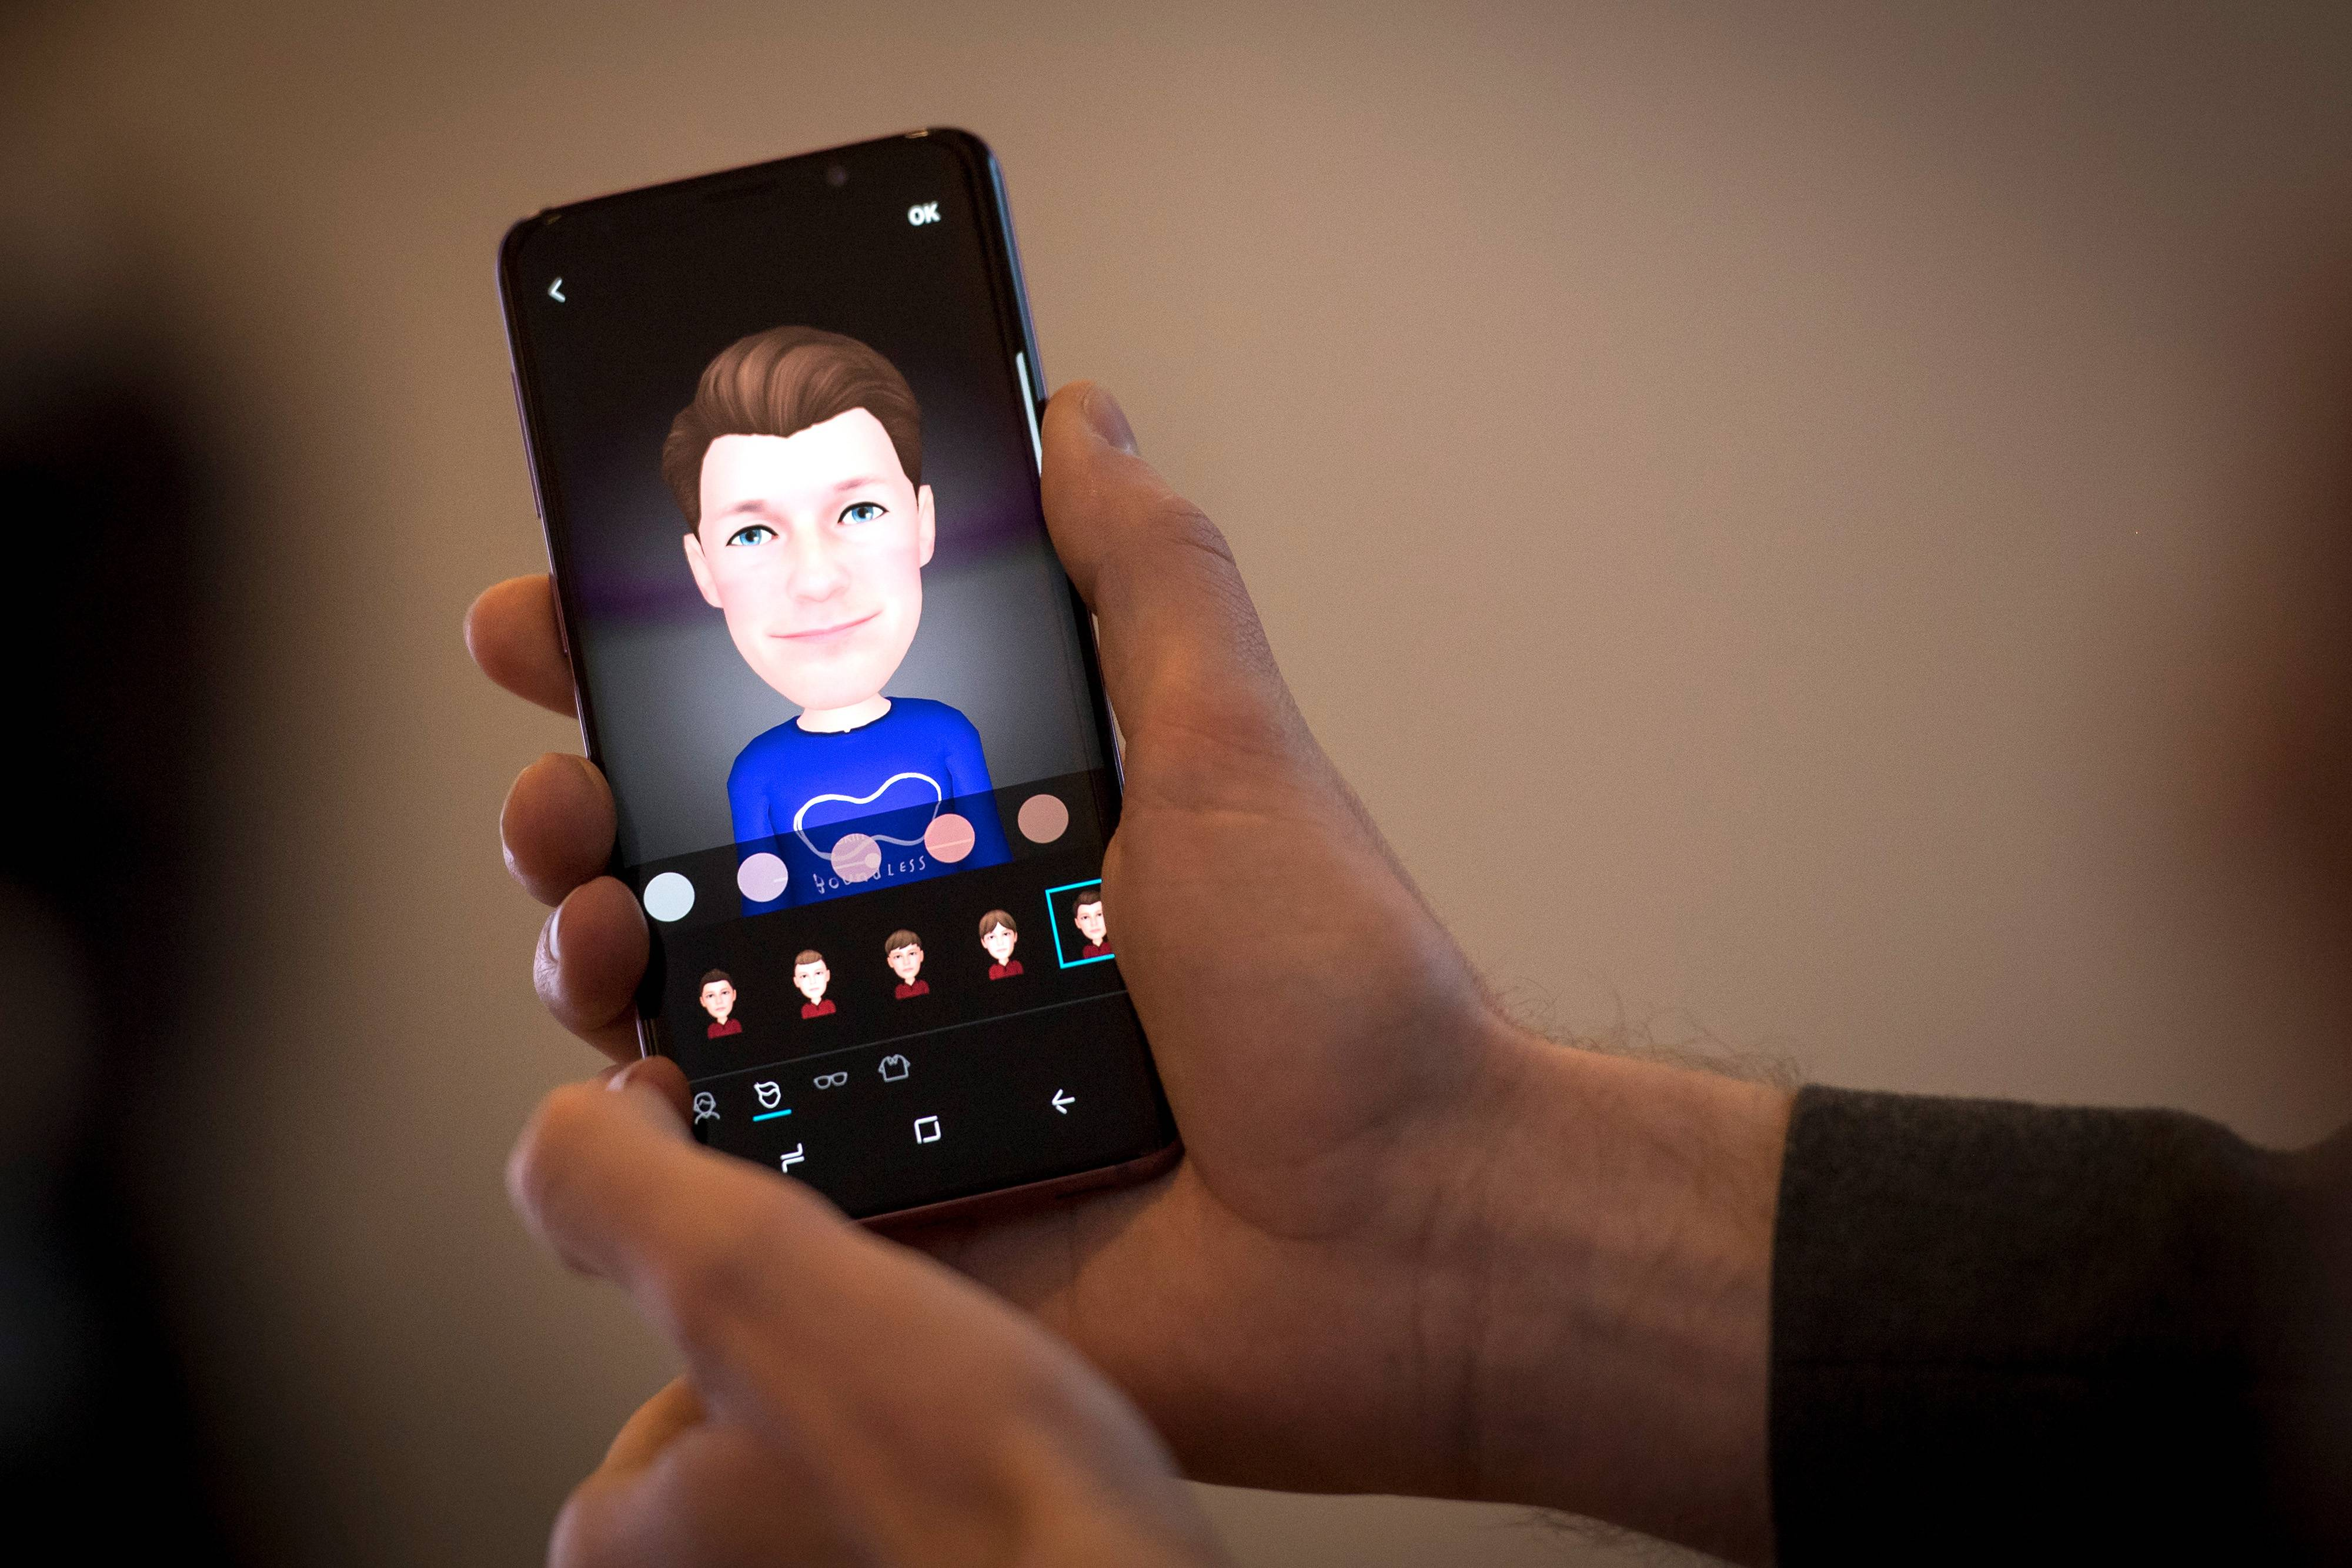 An attendee creates an emoji while holding a Samsung Electronics Galaxy S9 smartphone during the company's media event in San Francisco, California, U.S., on Feb. 16, 2018.